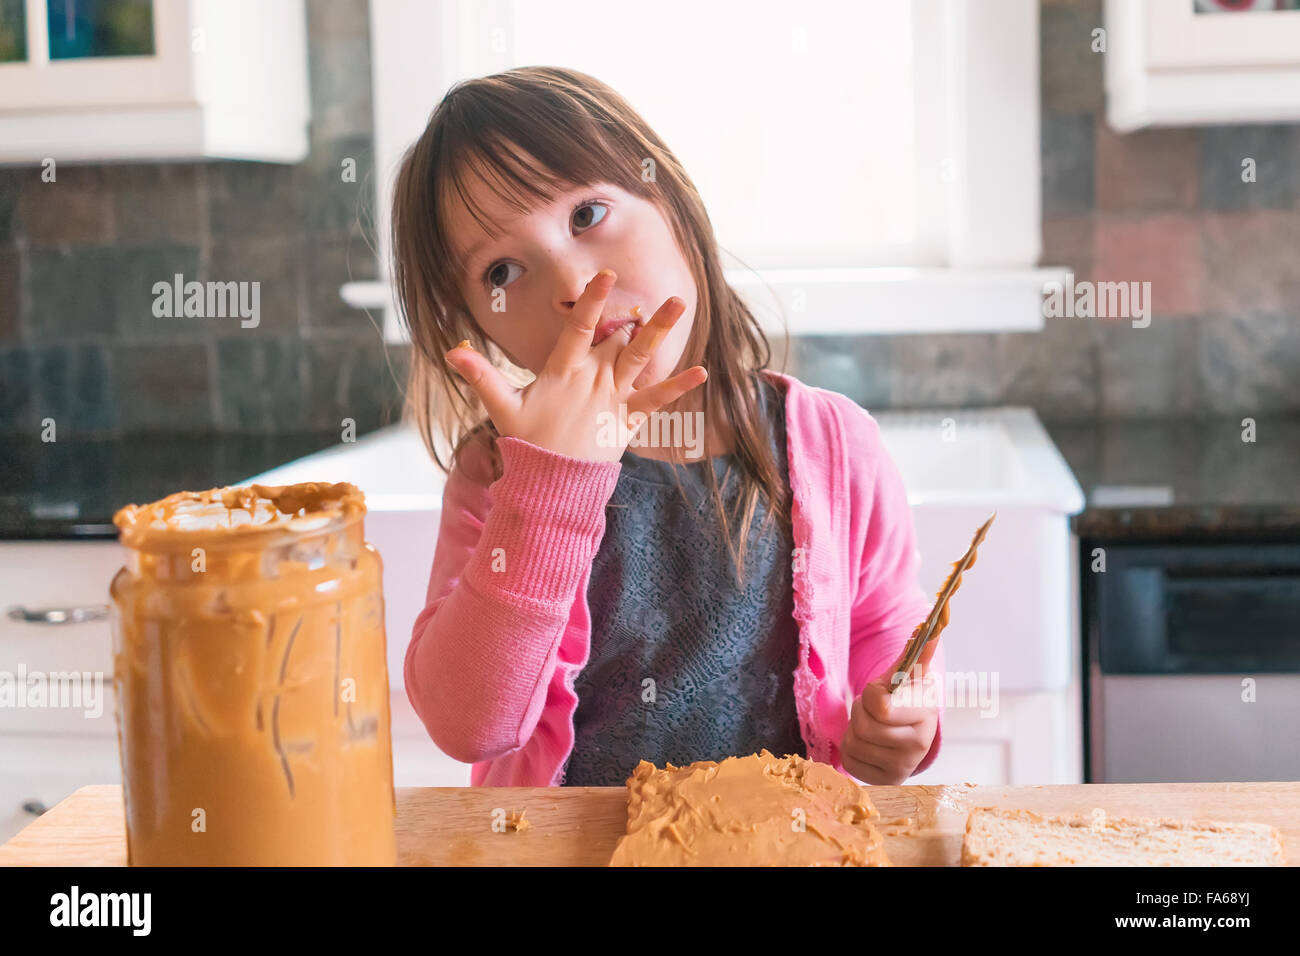 Girl making sandwich au beurre d'arachide, de lécher les doigts Photo Stock